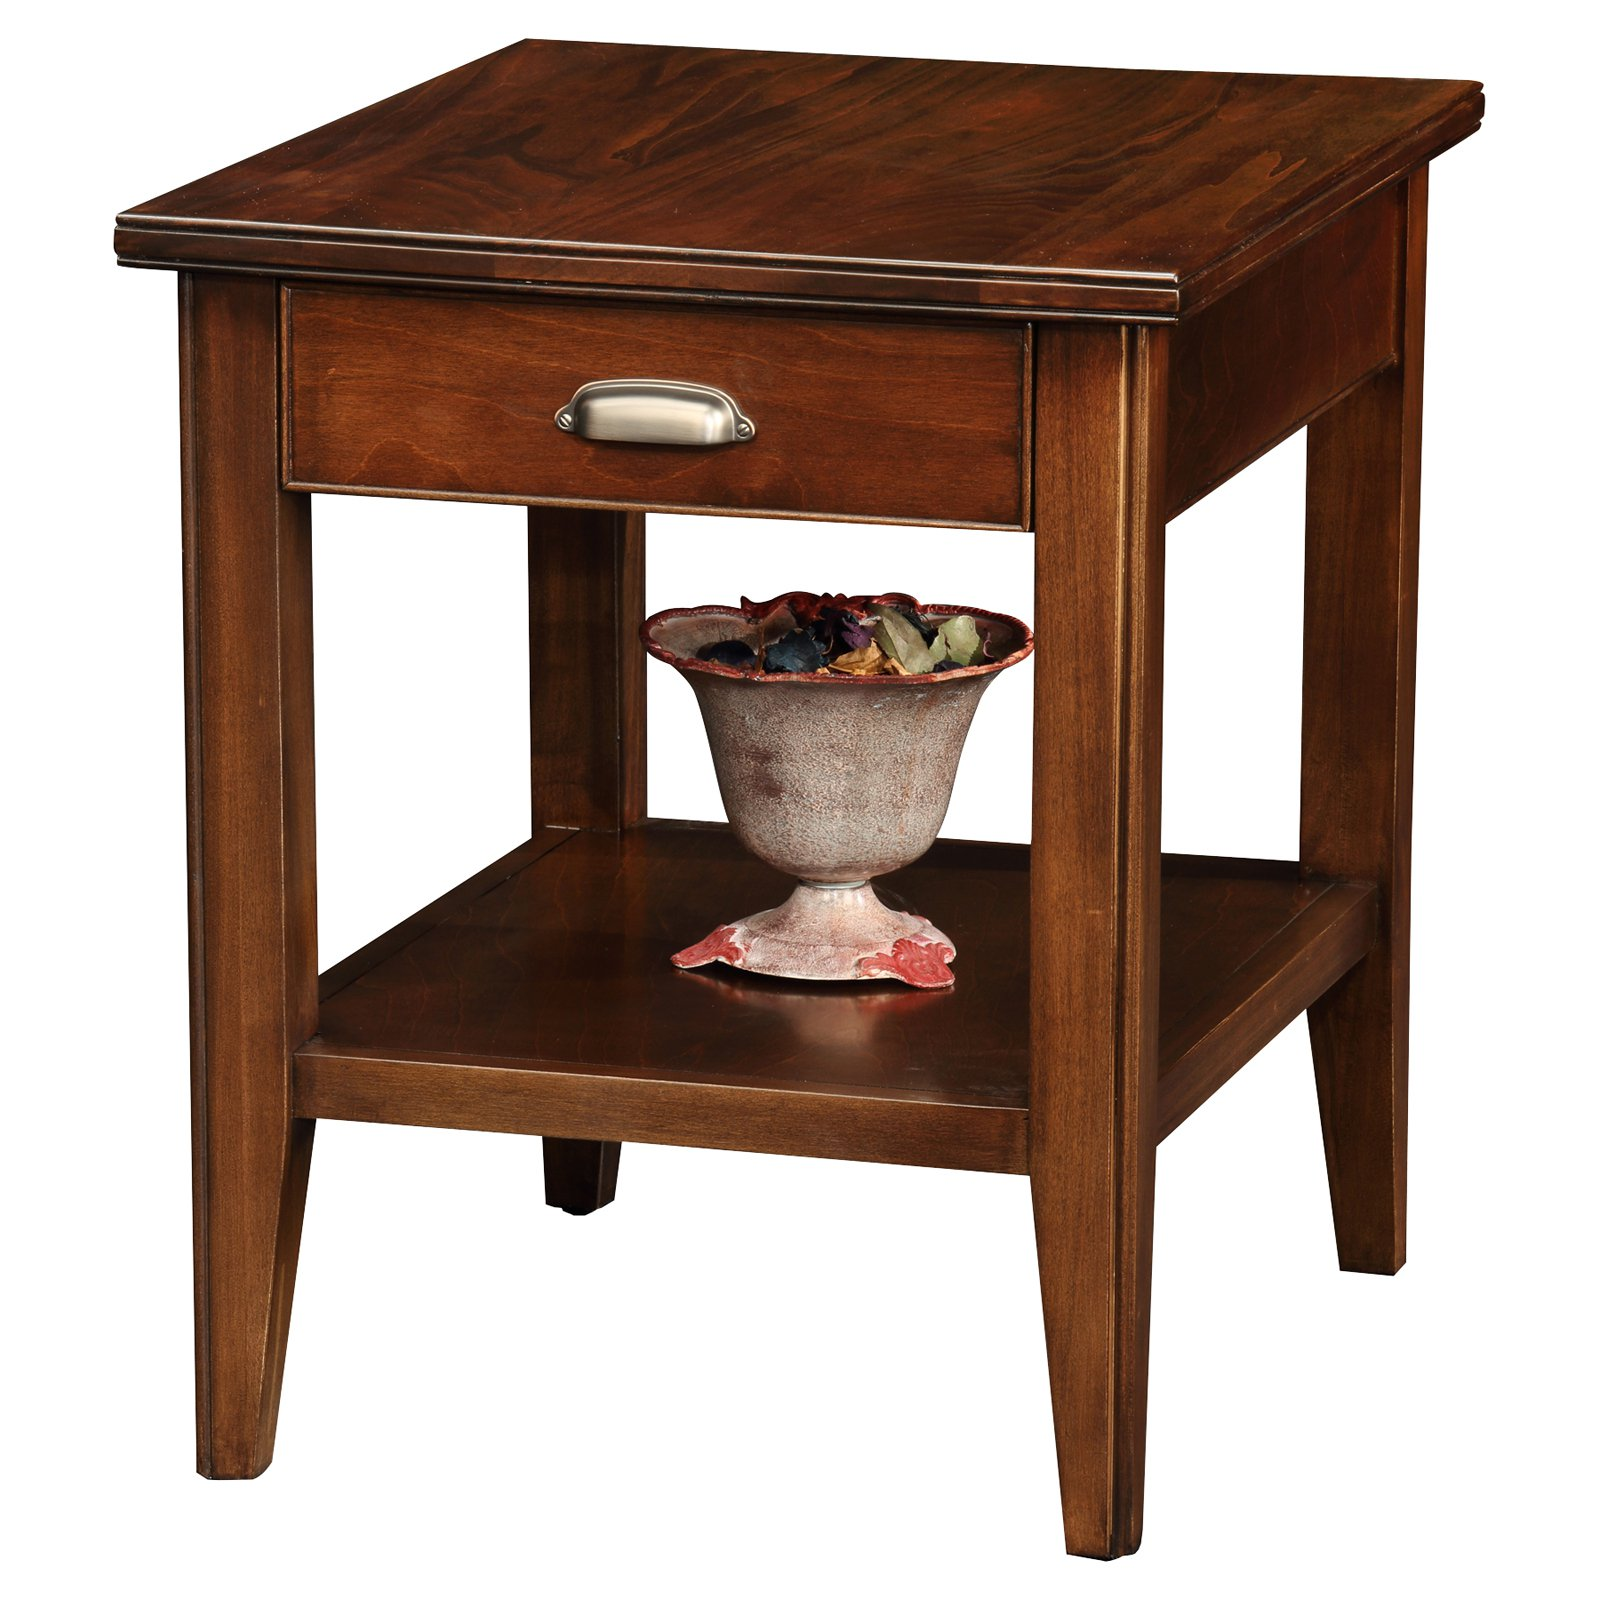 Perfect Leick Furniture Laurent Solid Wood Square End Table In Chocolate Cherry